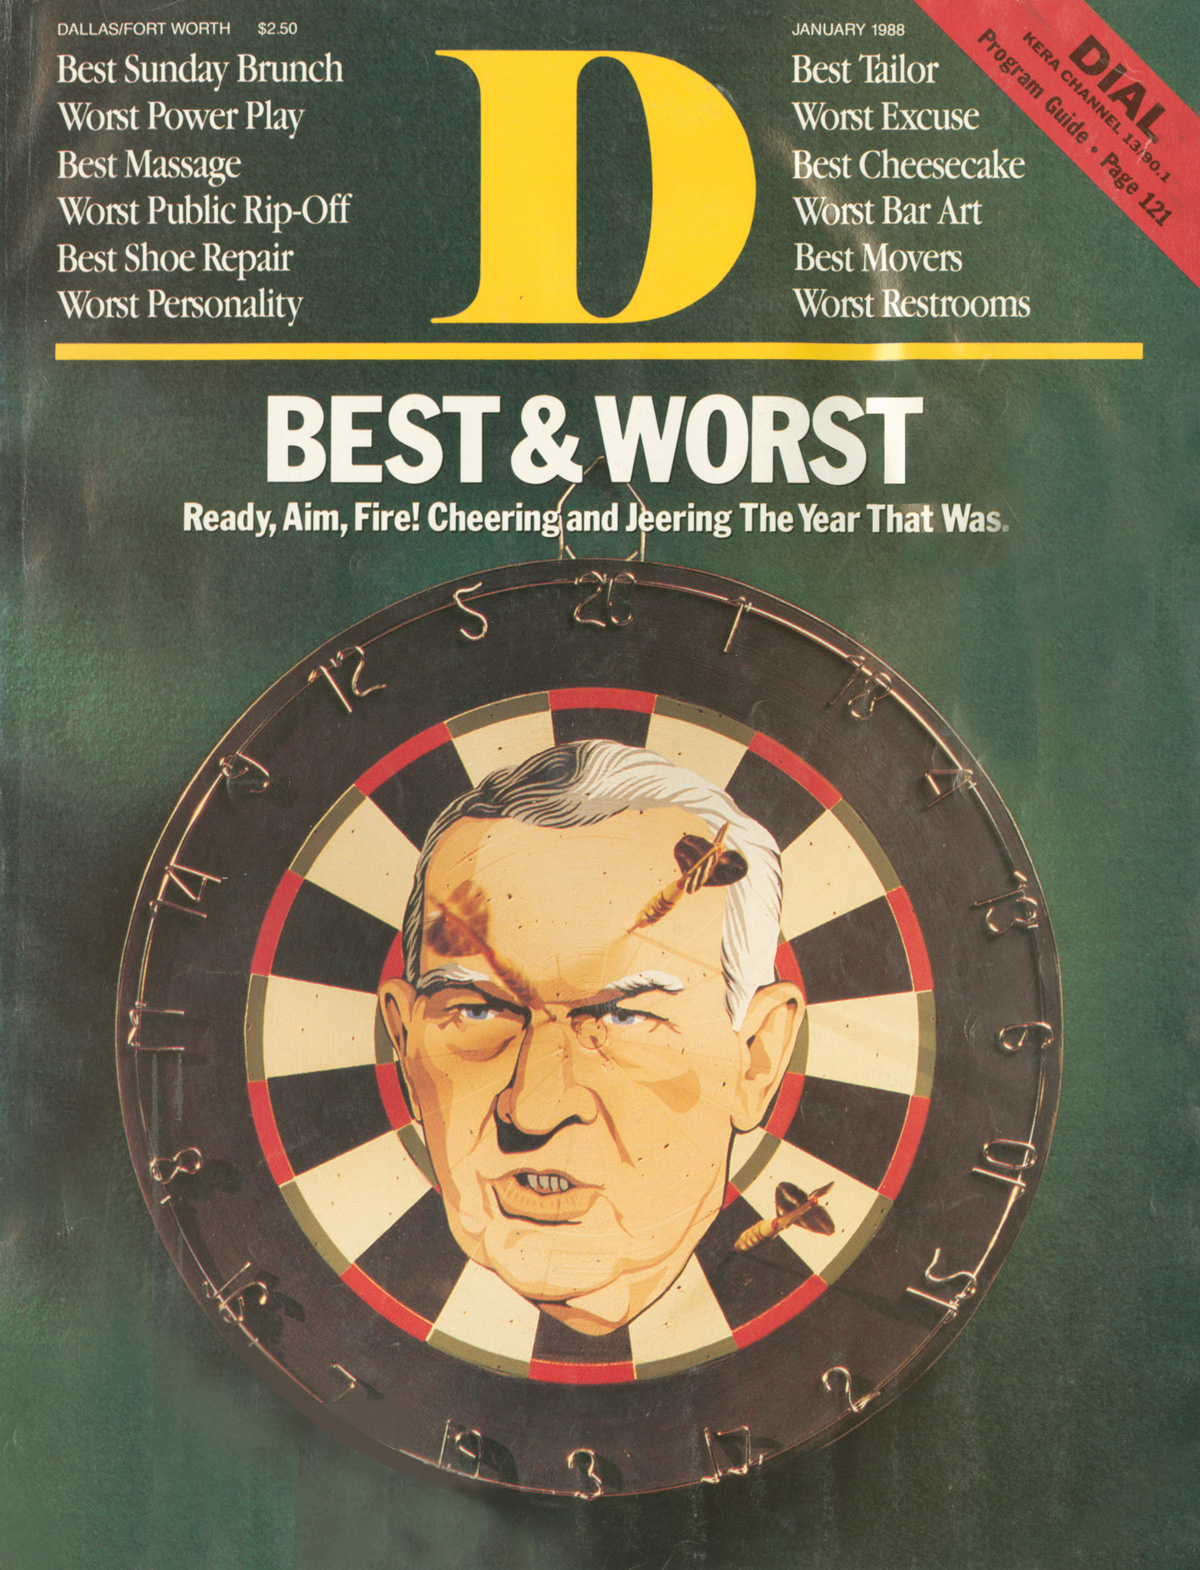 January 1988 cover